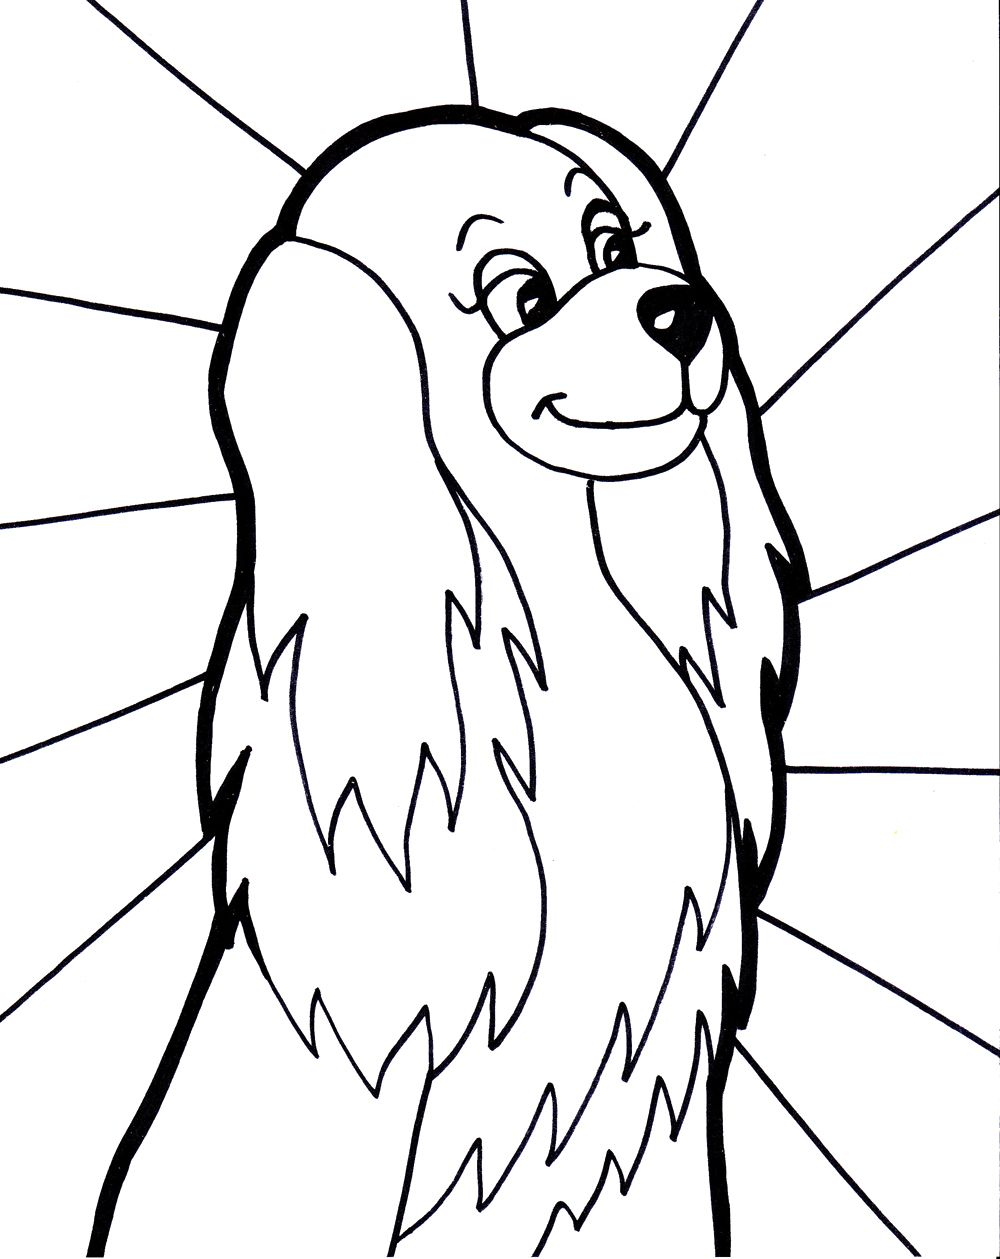 girl dog coloring page with images dog coloring page